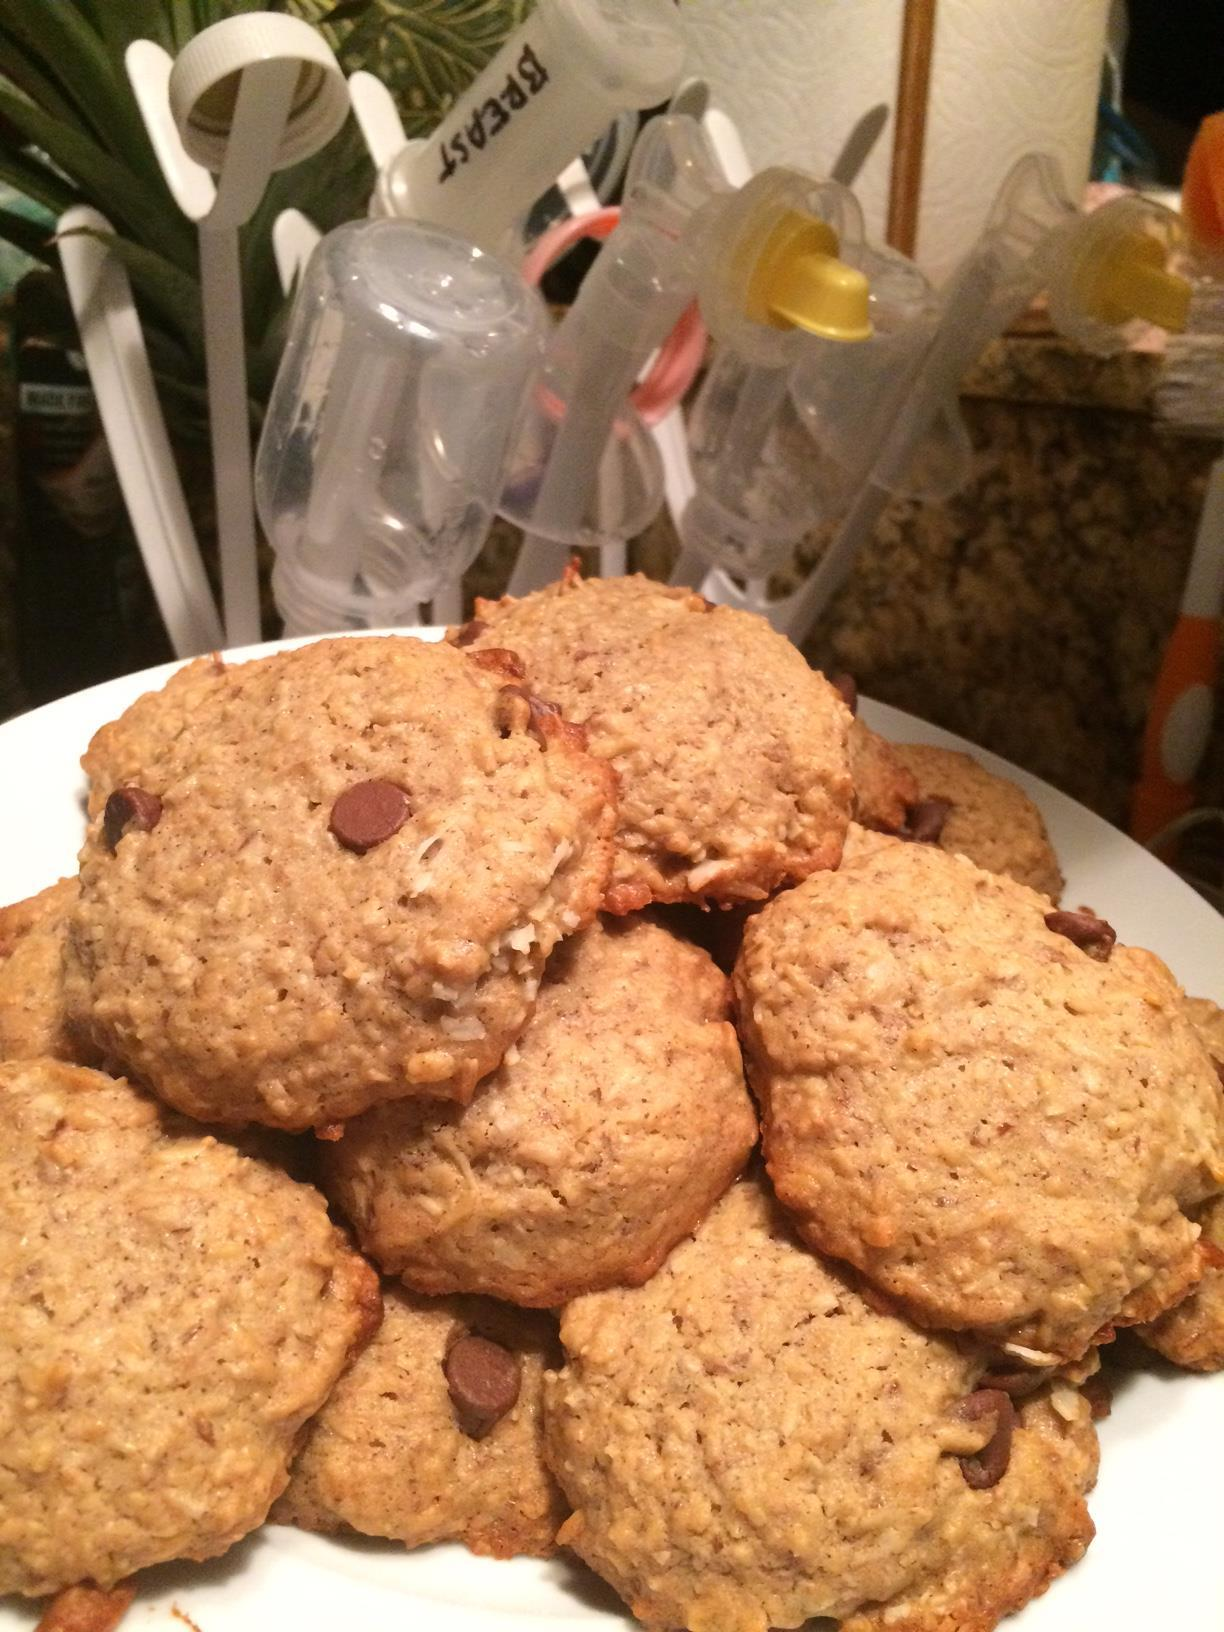 (more) Productive Pumping is just 3 cookies away. -